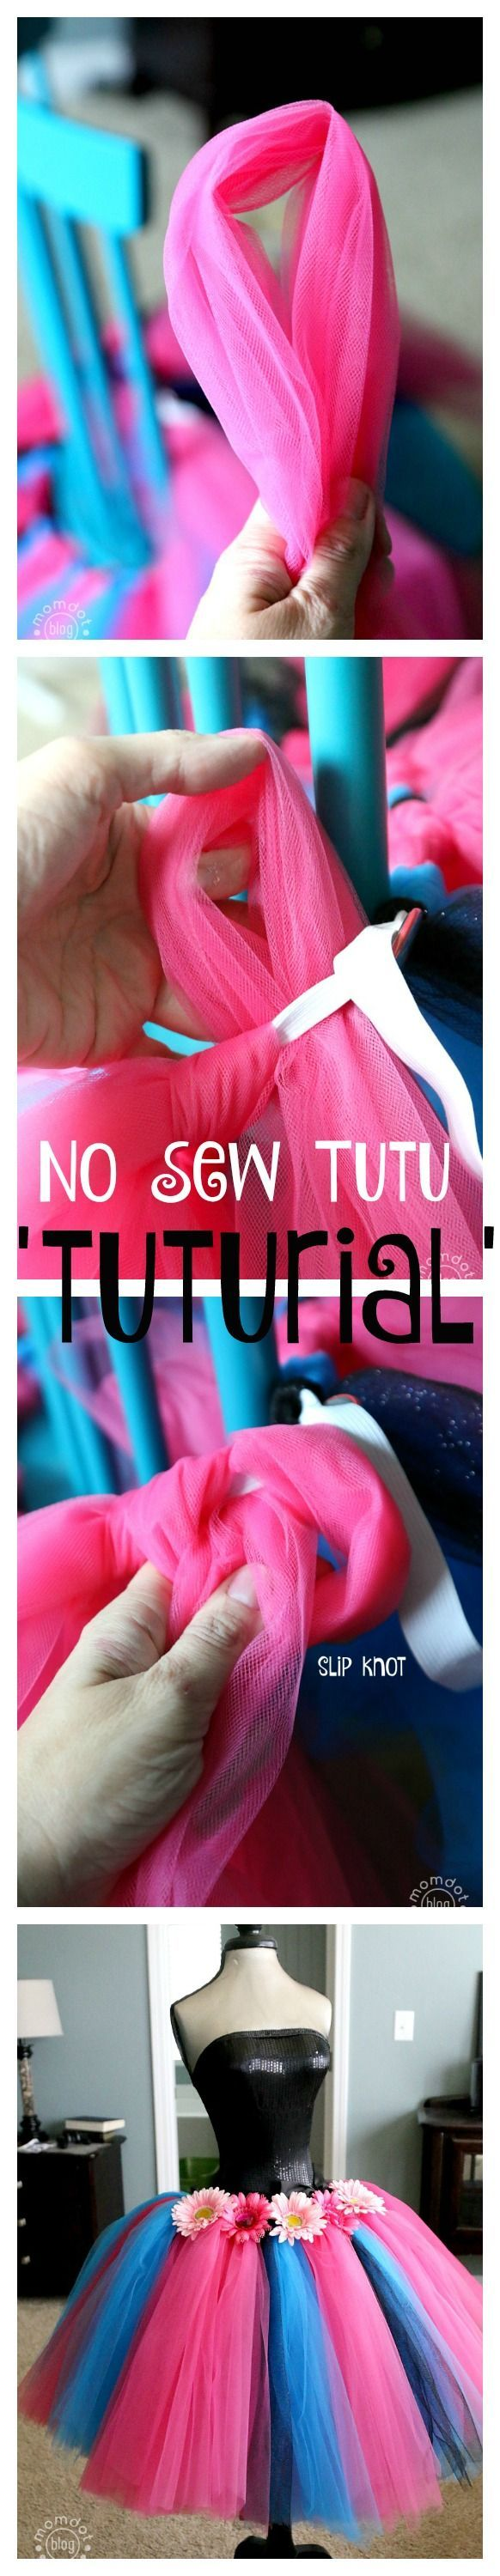 how to make a new sew tutu (WE could do children's elf or santa costumes this way)